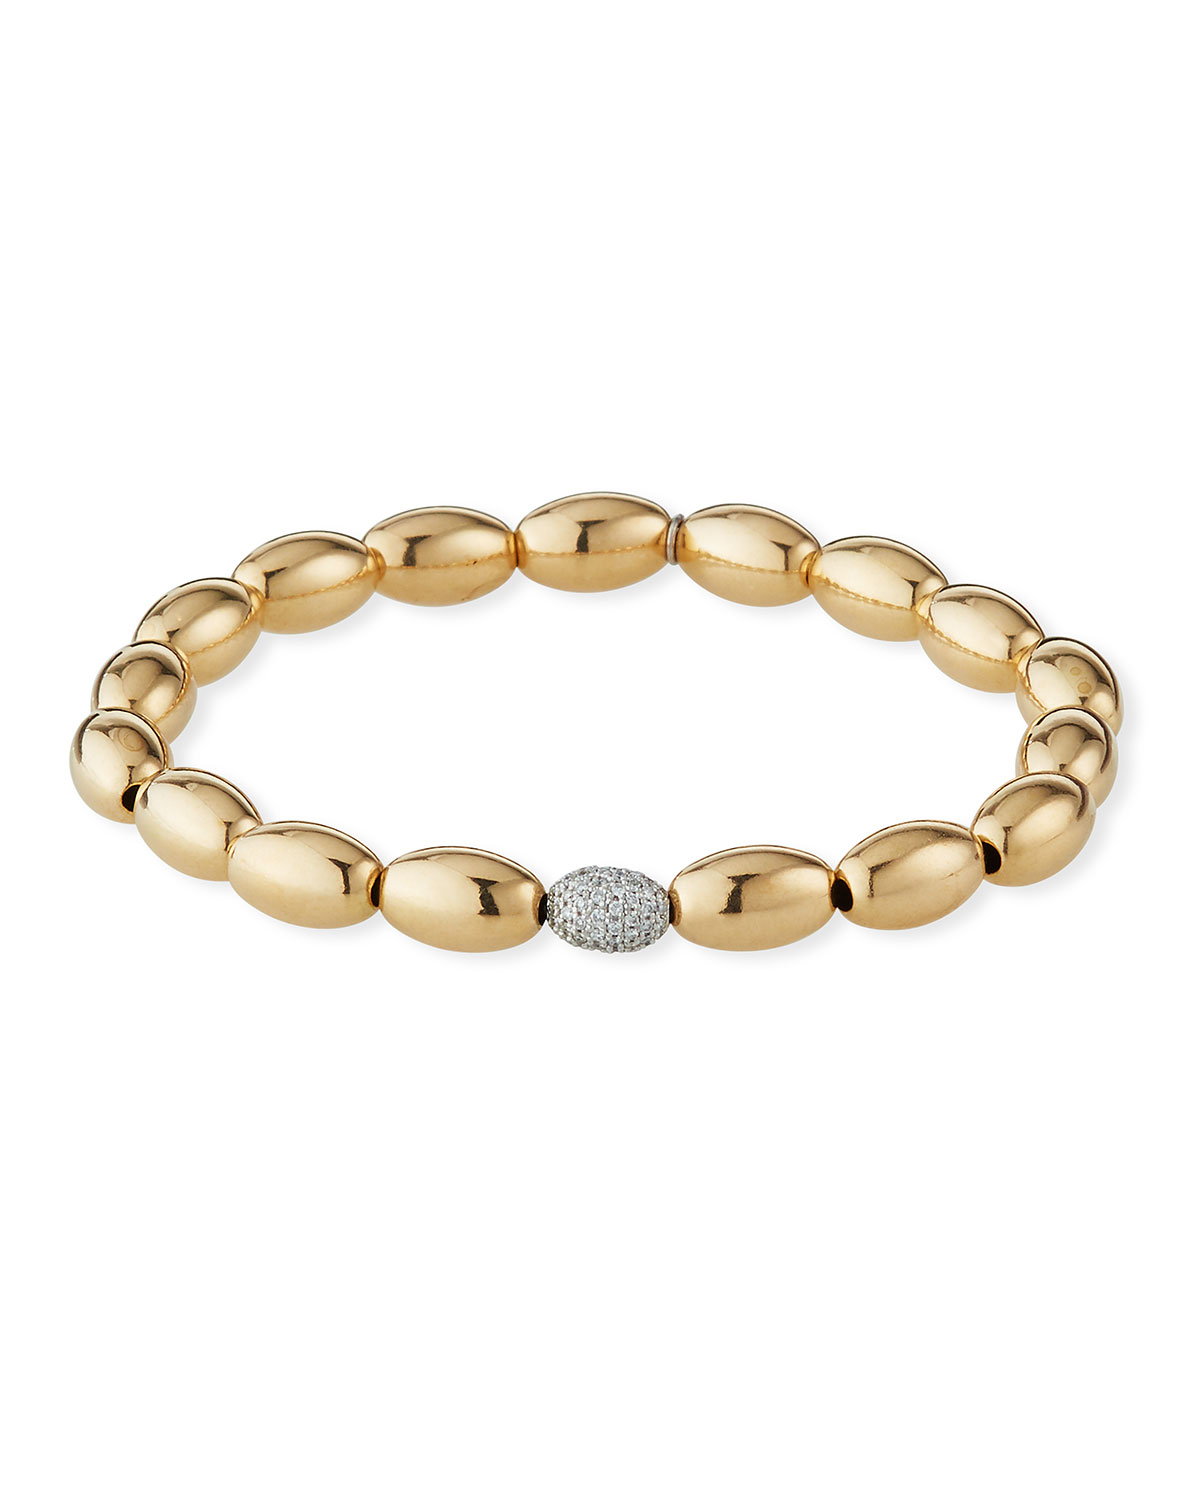 Sydney Evan 14k Gold 6mm Bead & Diamond Bracelet